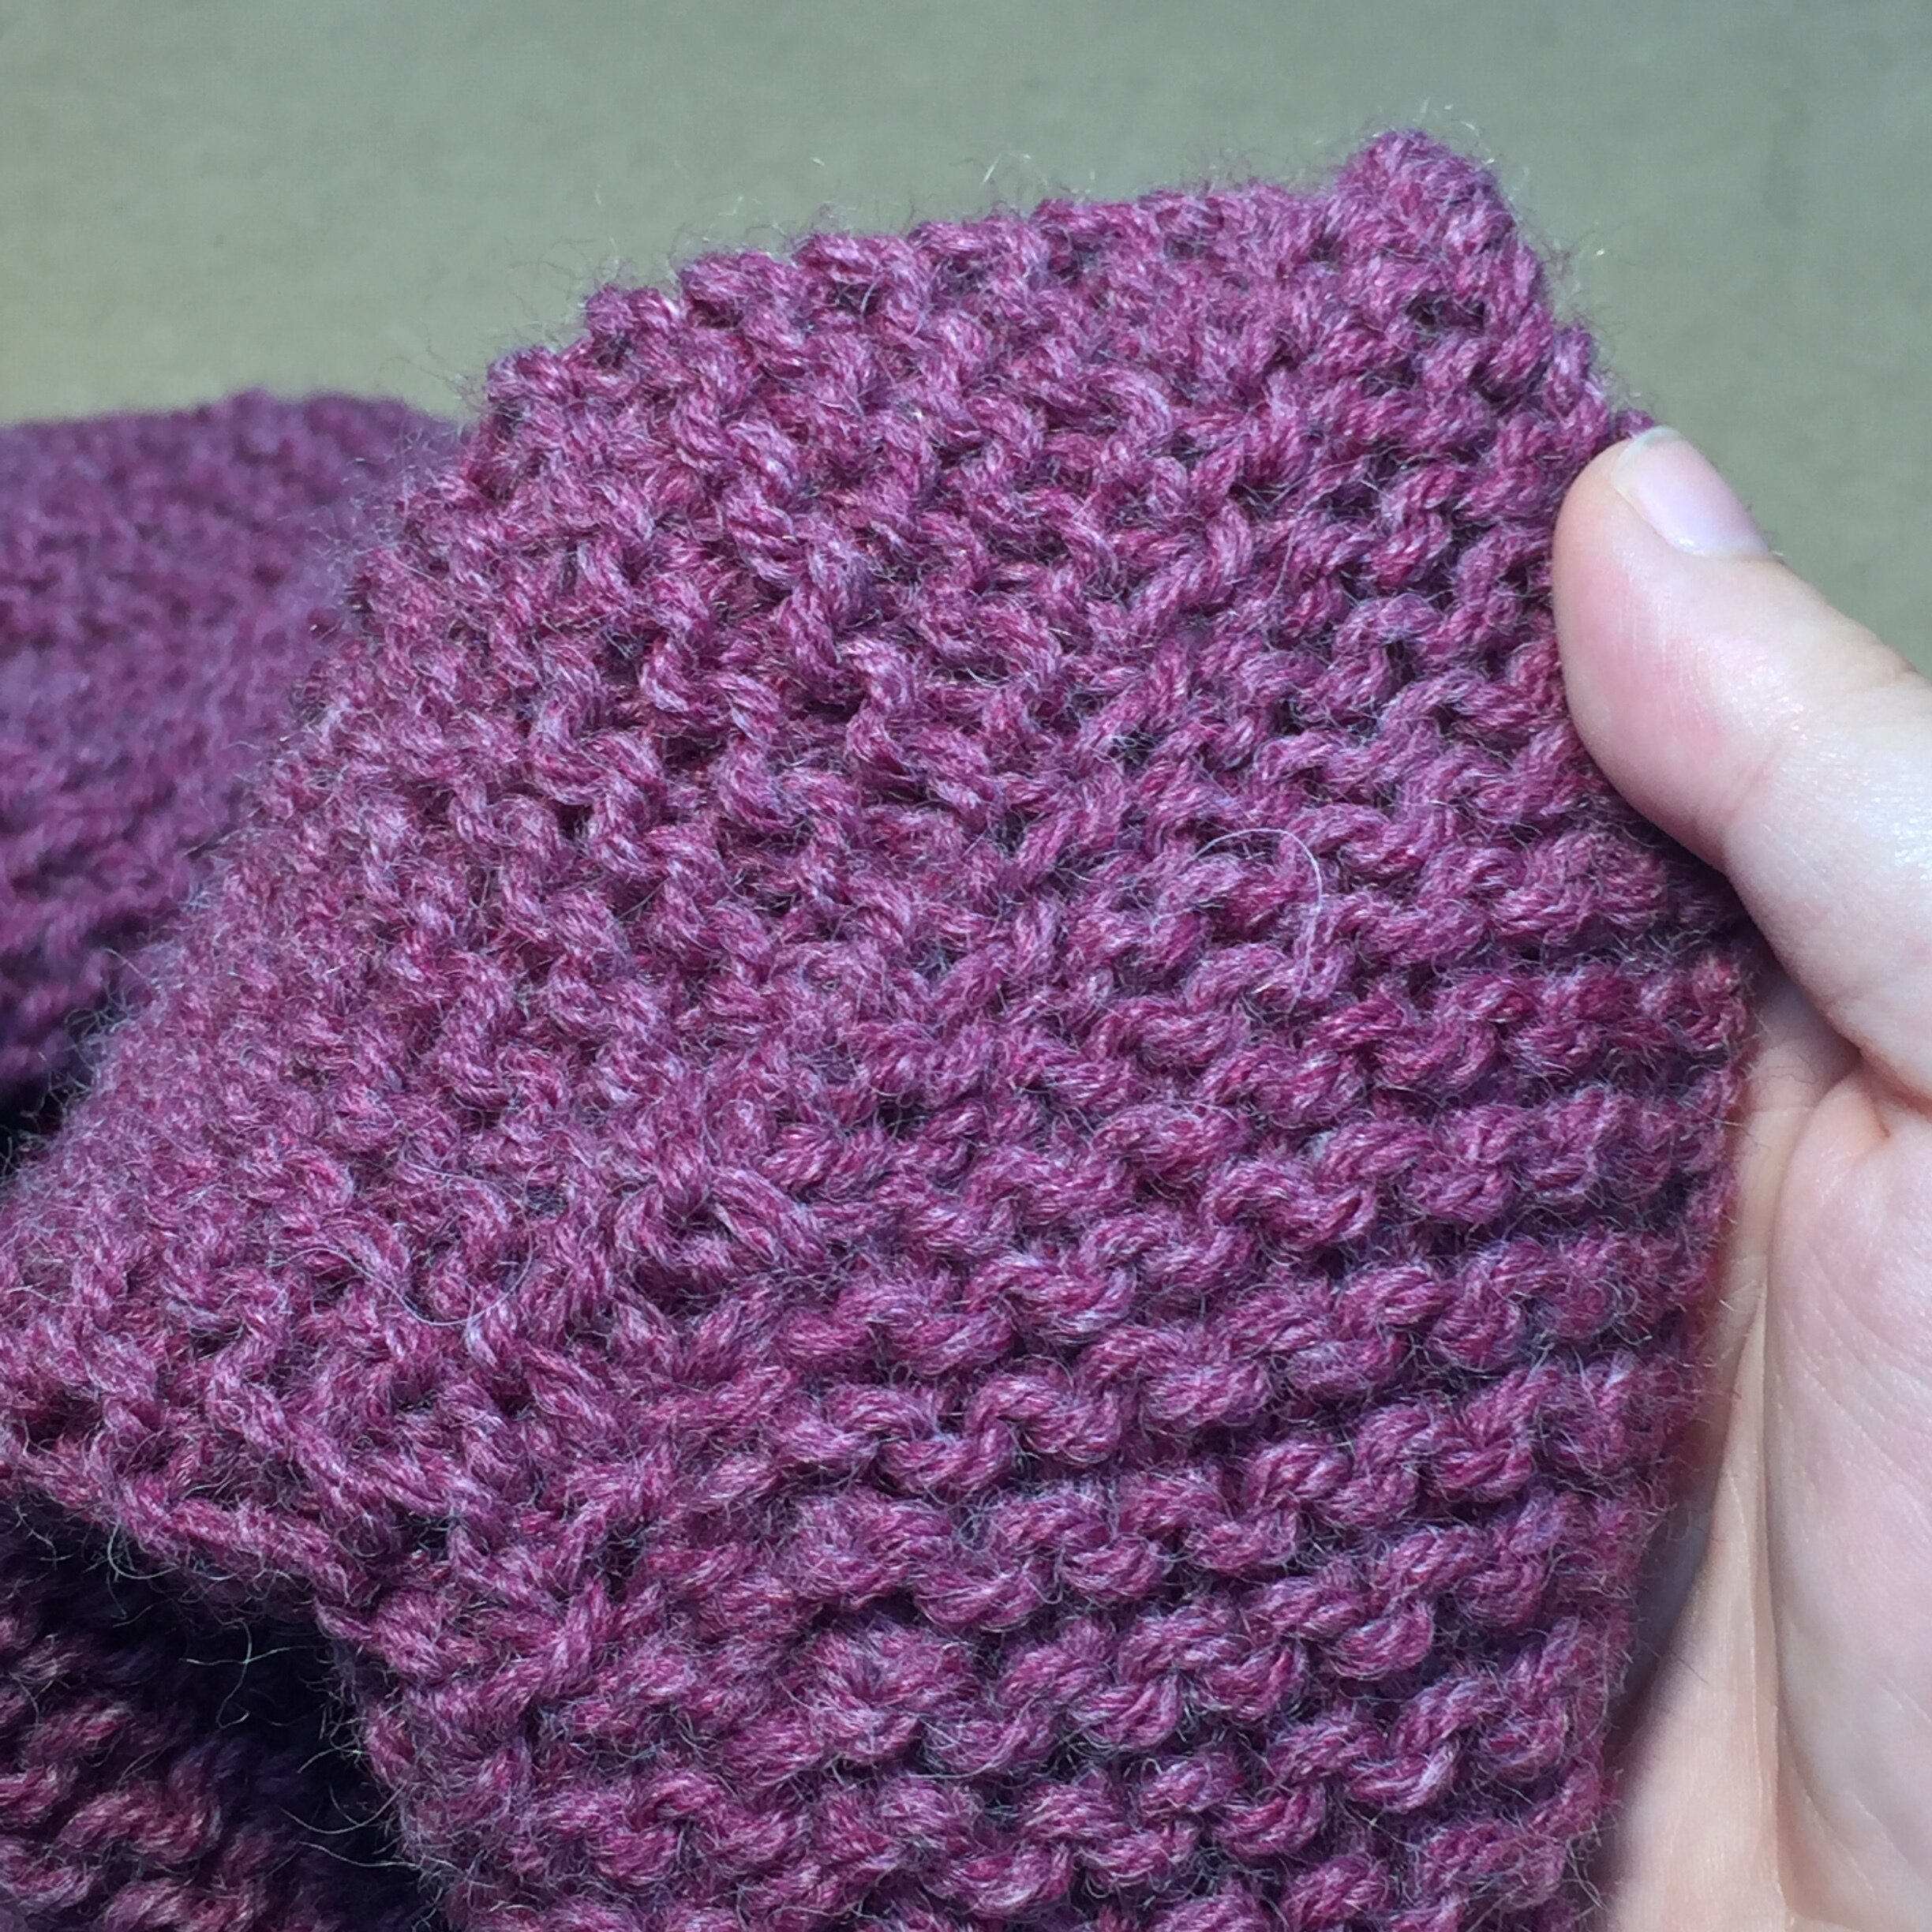 Yarn: Lion Brand Wool-Ease in Violet Red with Grey Heather